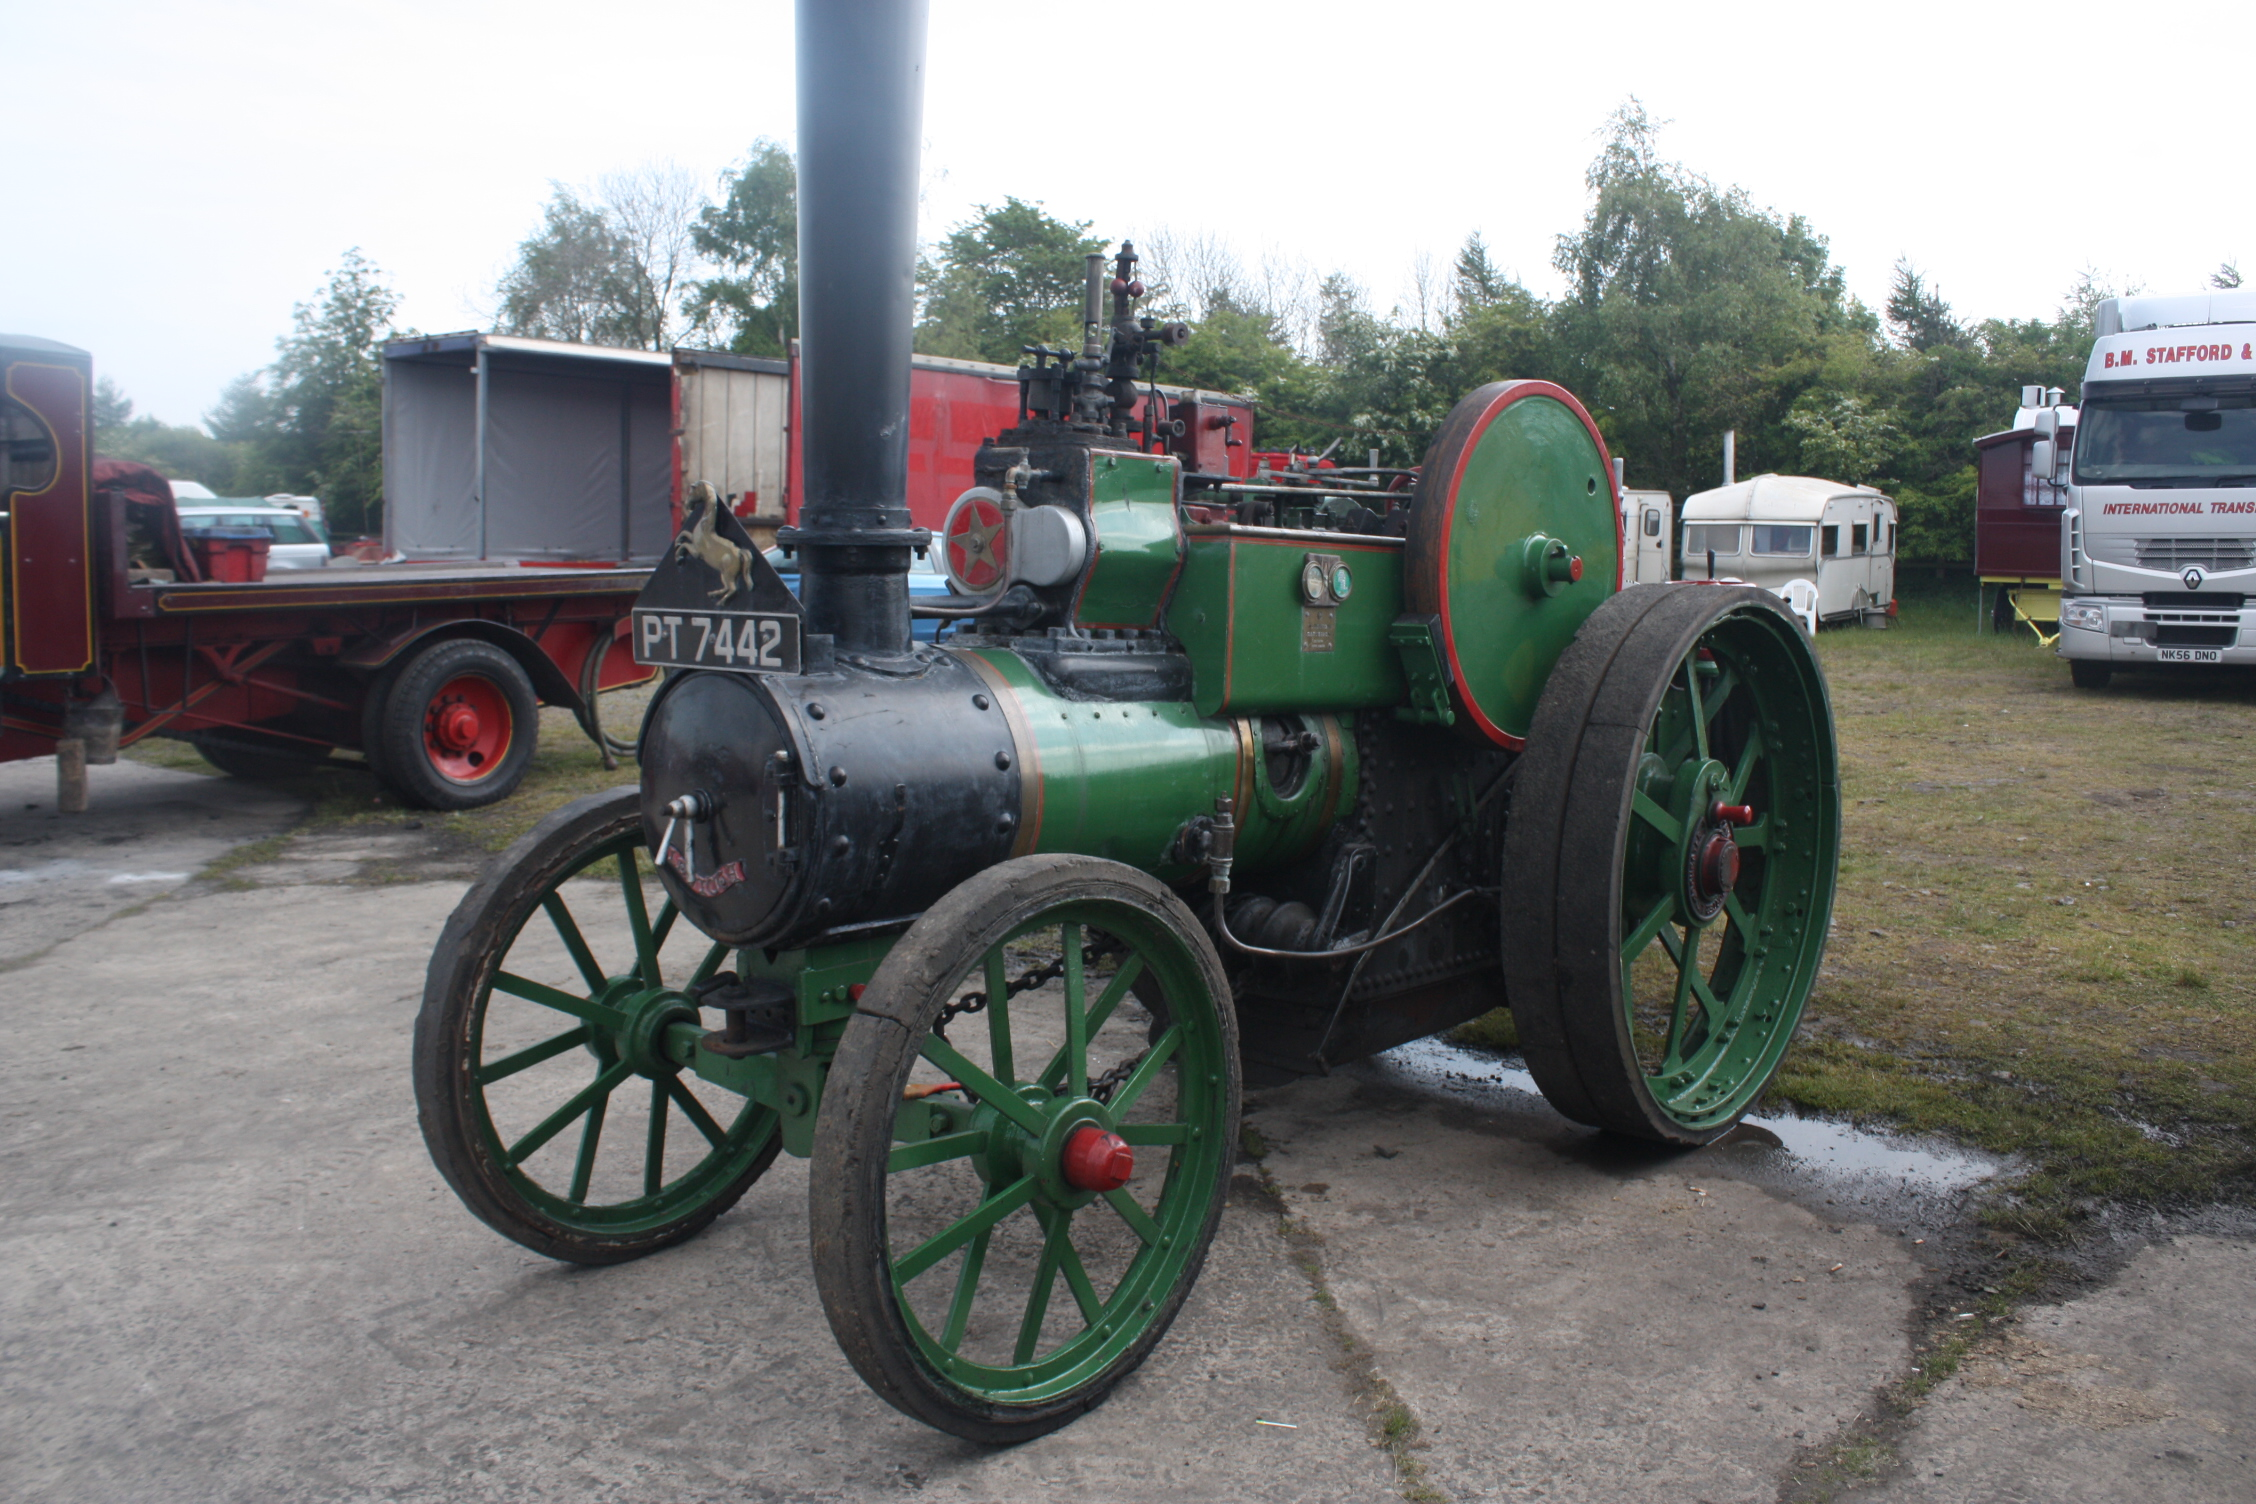 Aveling porter no 11451 tractor construction plant wiki the classic vehicle and - Porter international wiki ...